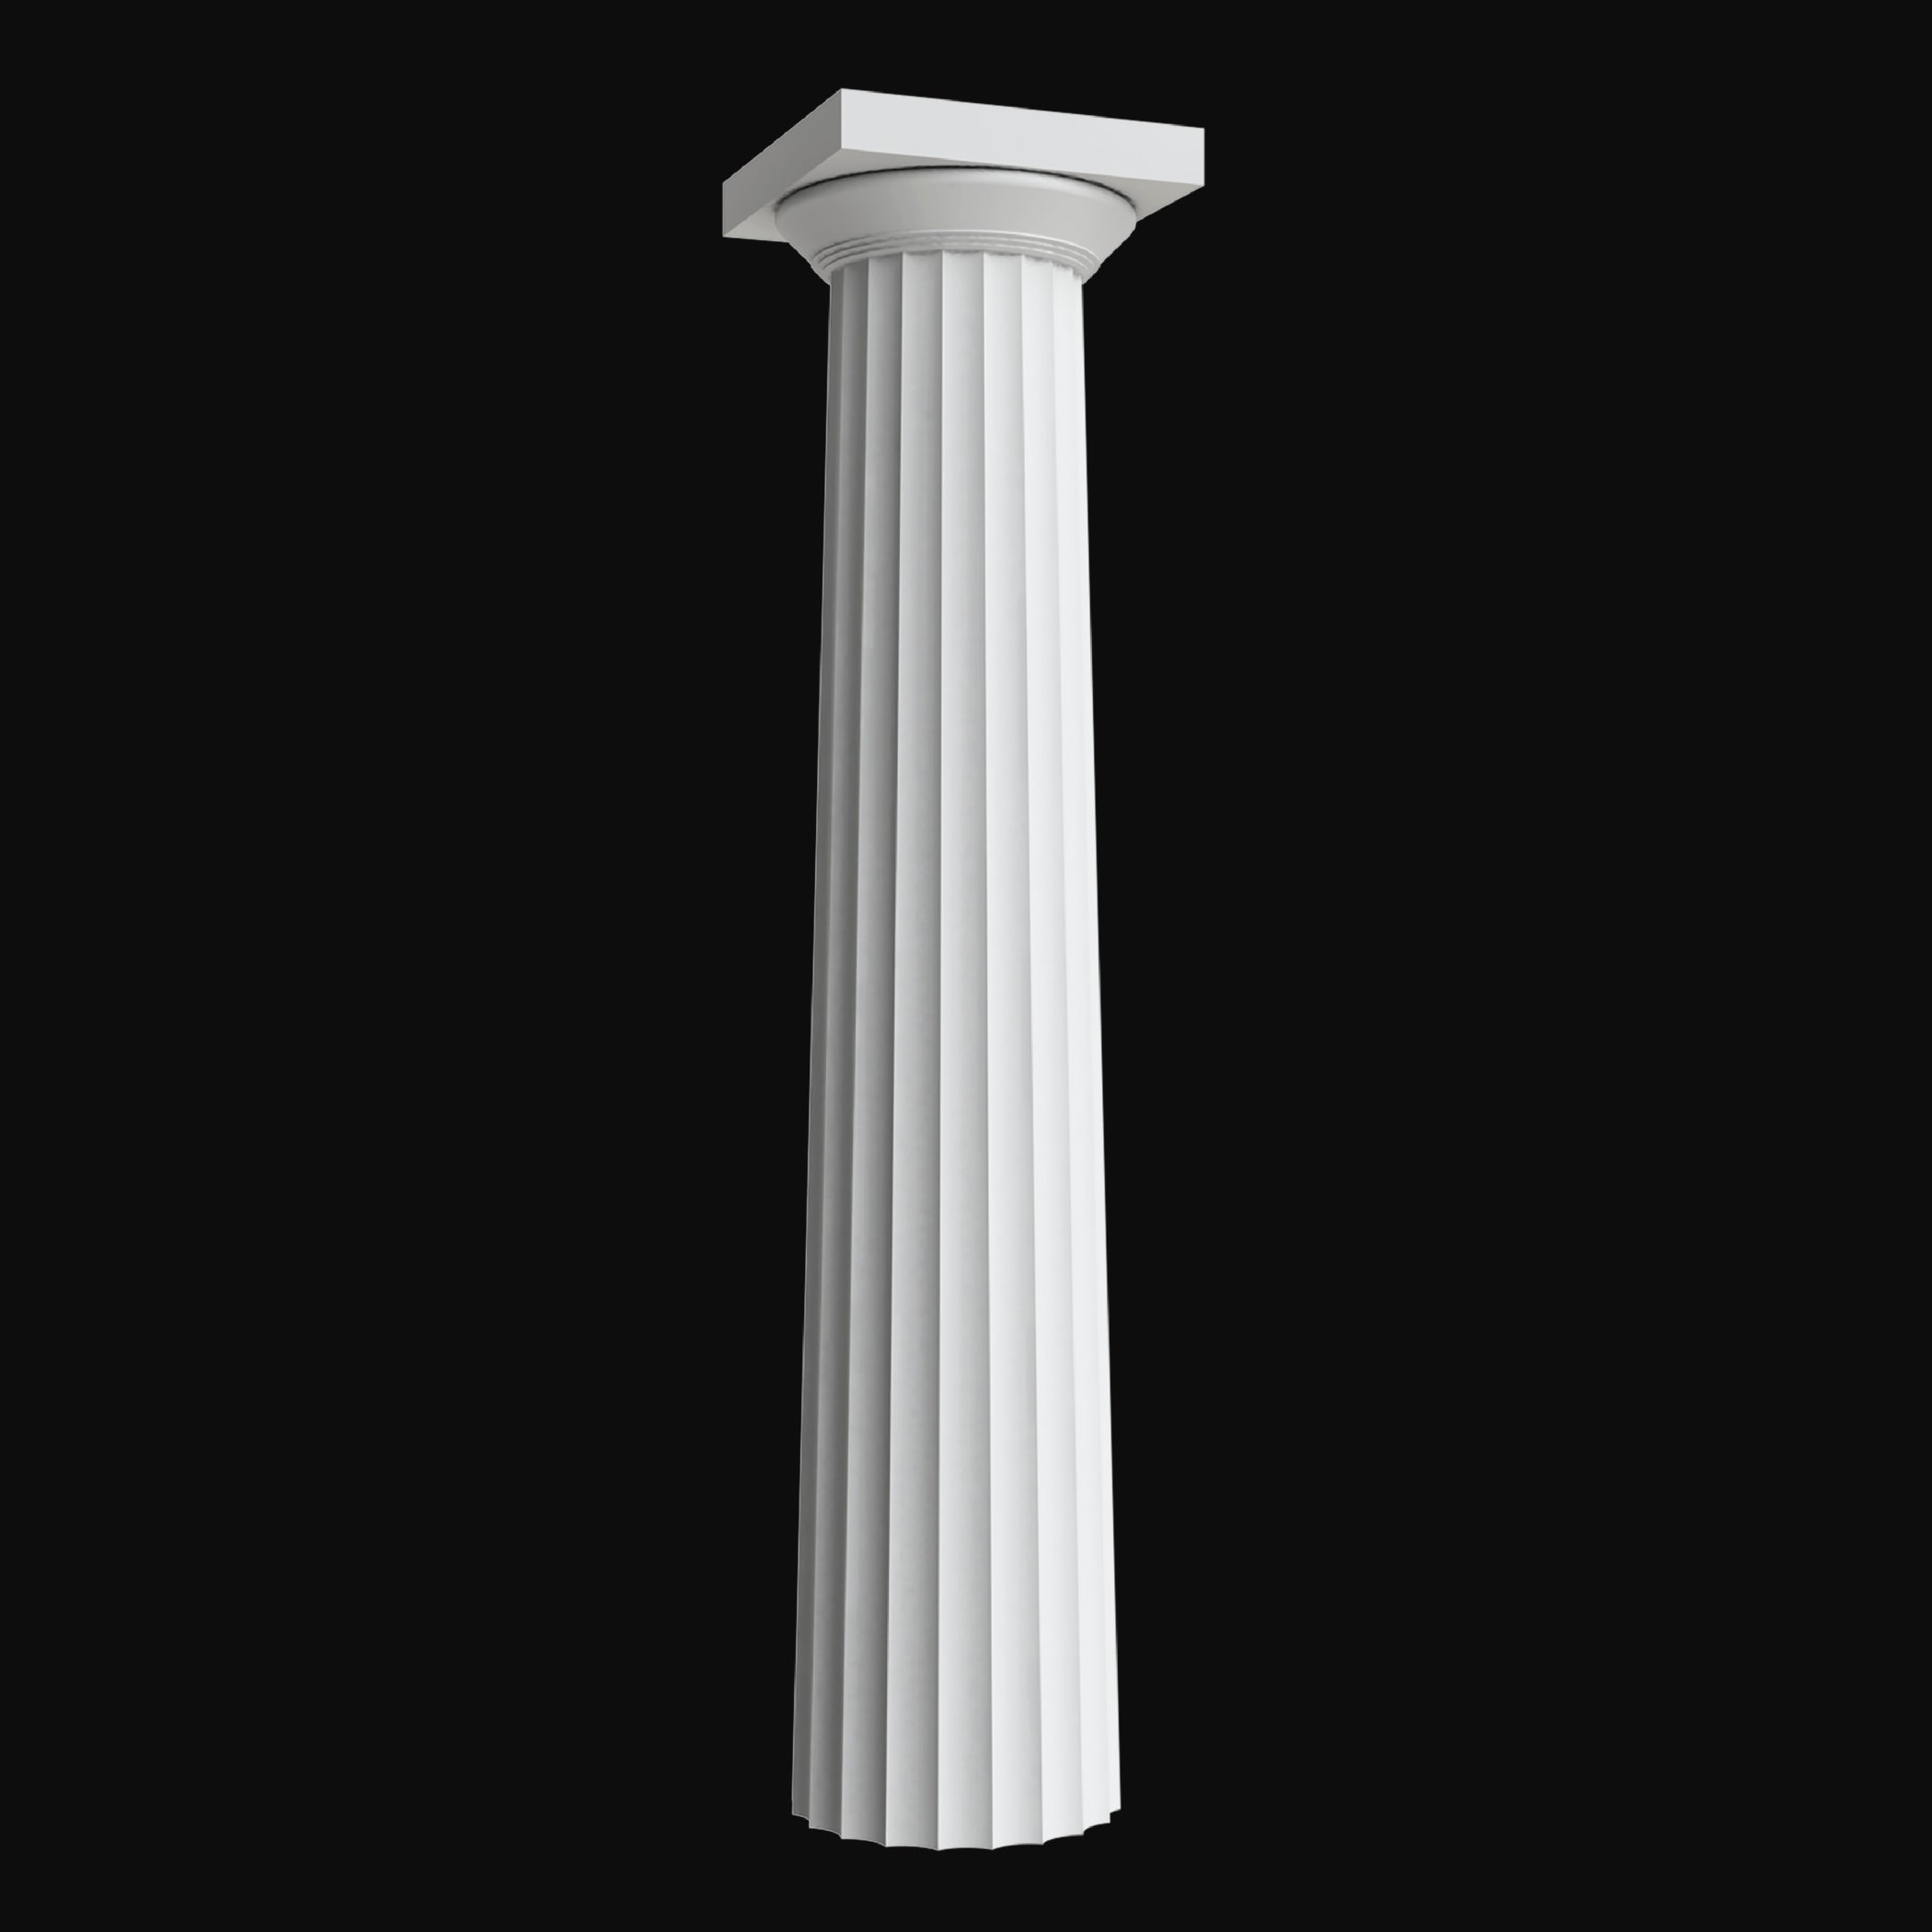 Design #BR101 - Doric Order (Greek) Column - ColumnsDirect